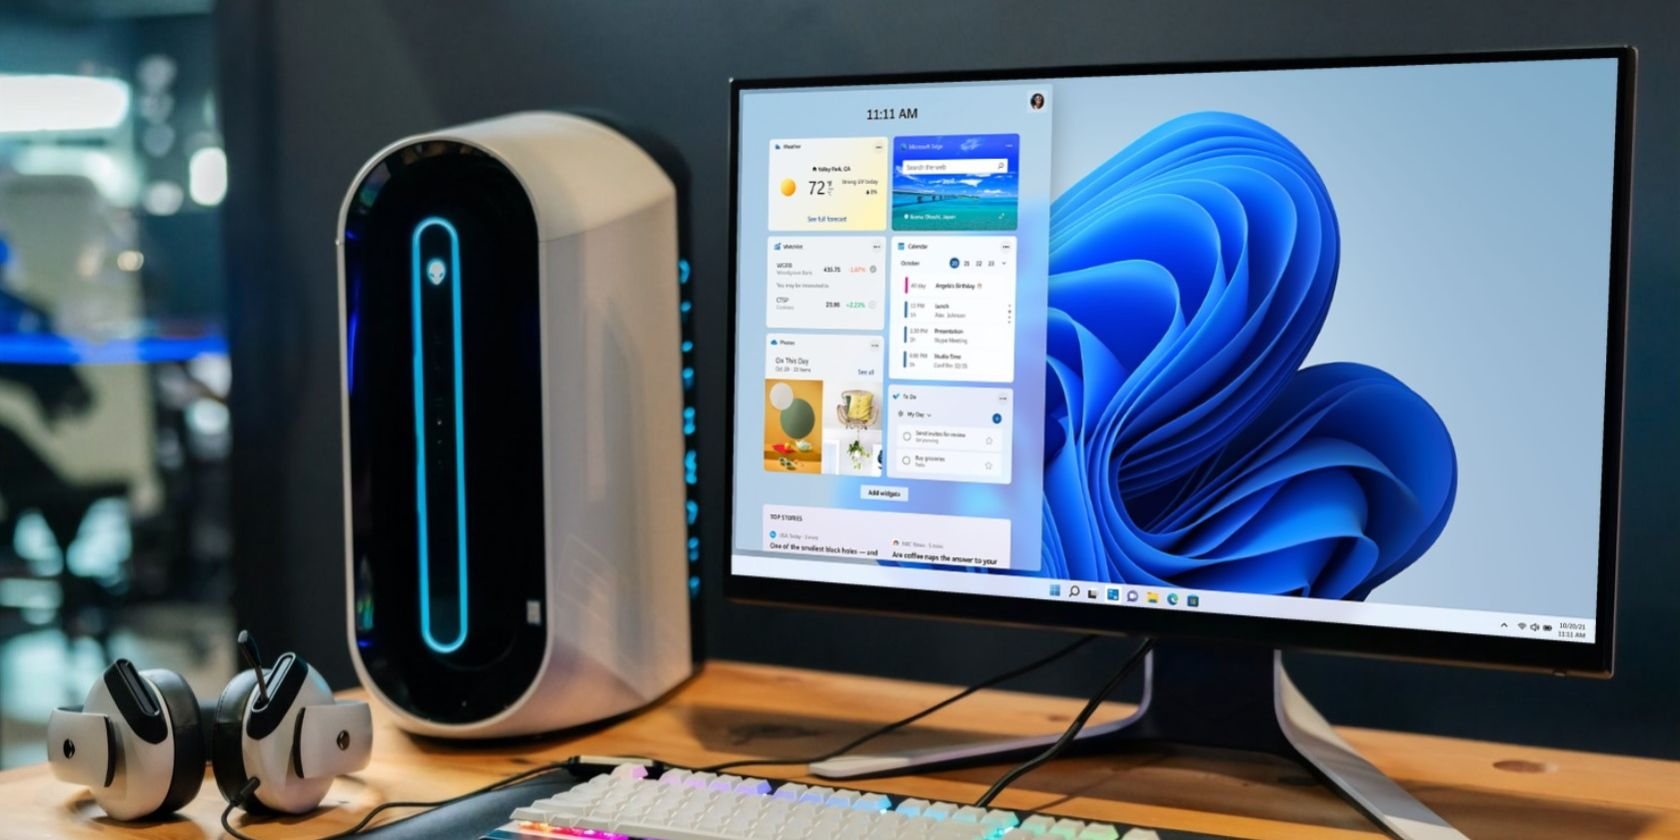 Can Your PC Run Windows 11? Check These System Requirements